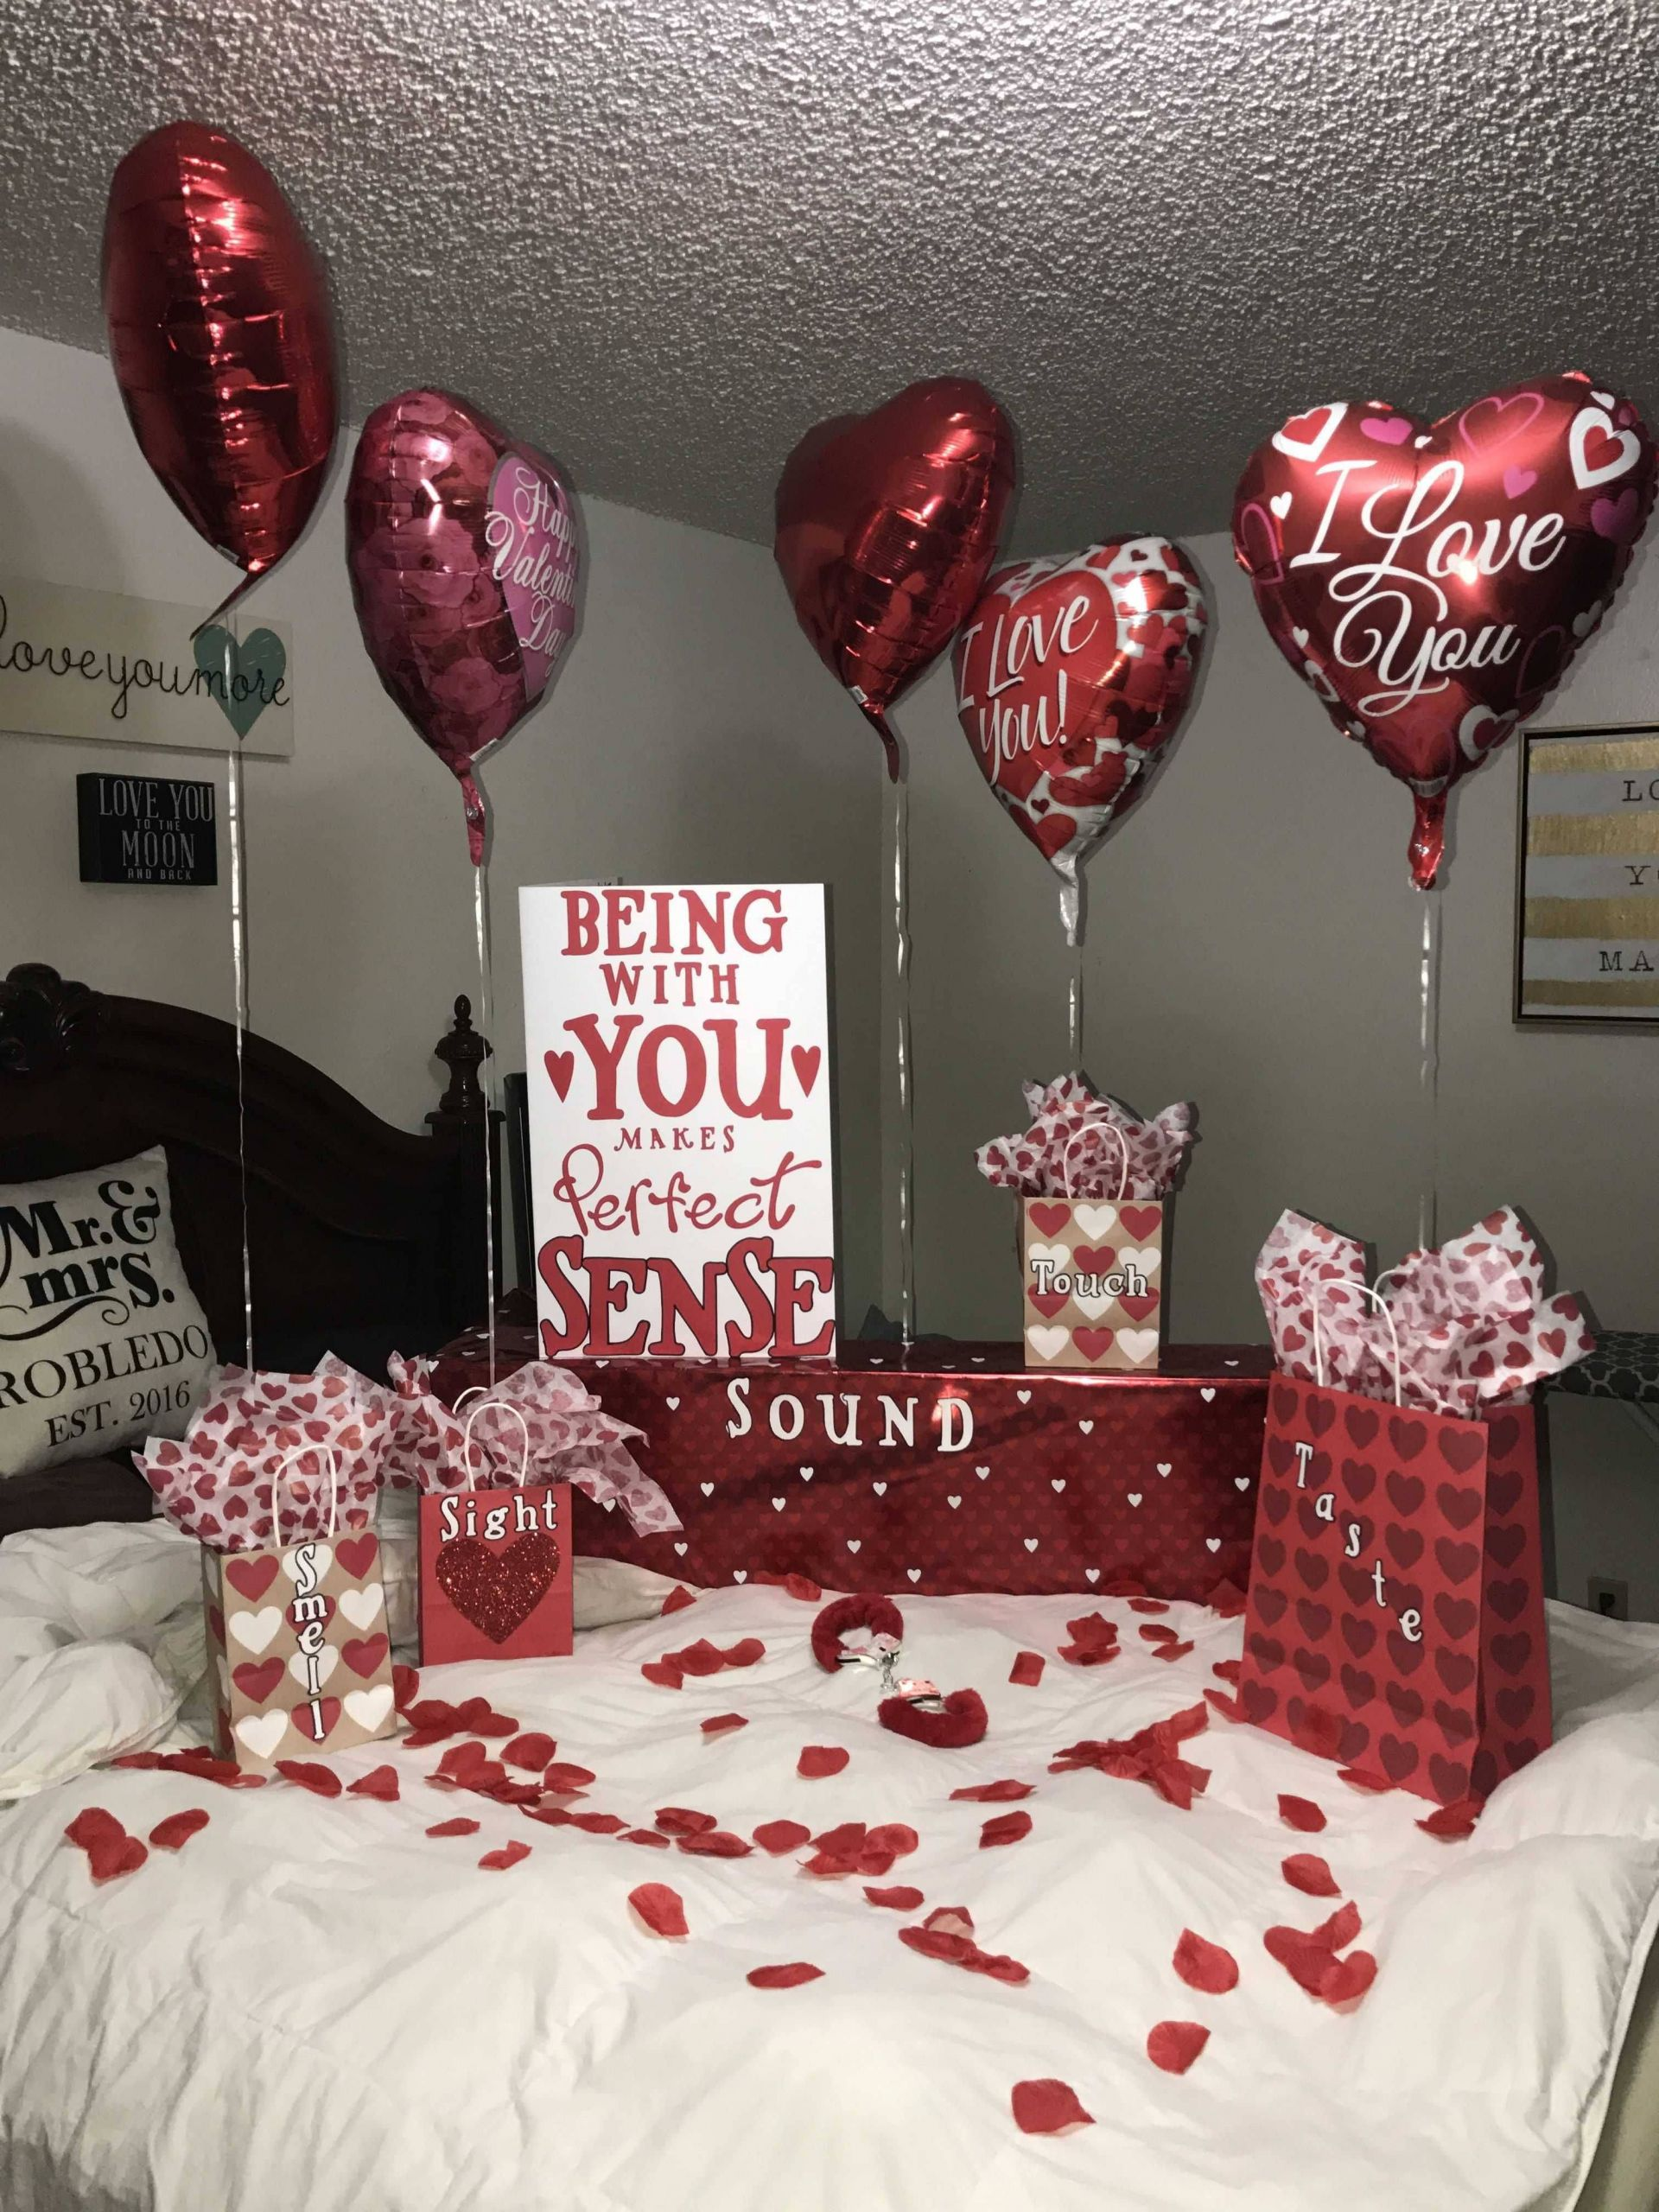 Beautiful Romantic Bedroom Ideas for Valentines Lovely 25 Beautiful Romantic Bedroom Ideas for Valentines